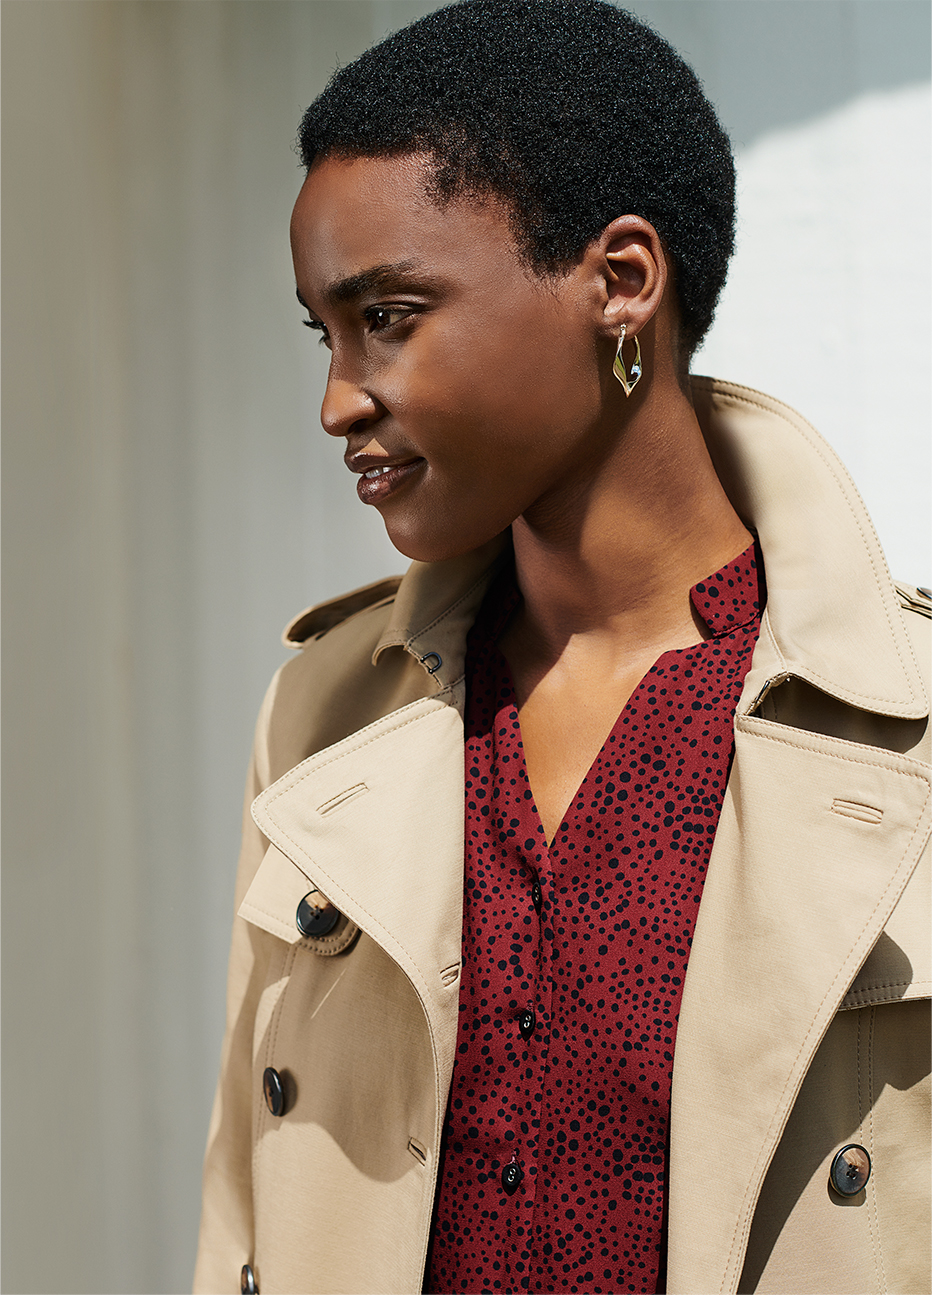 Hobbs model wearing a beige women's trench coat over a red shirt dress and hoop earrings.